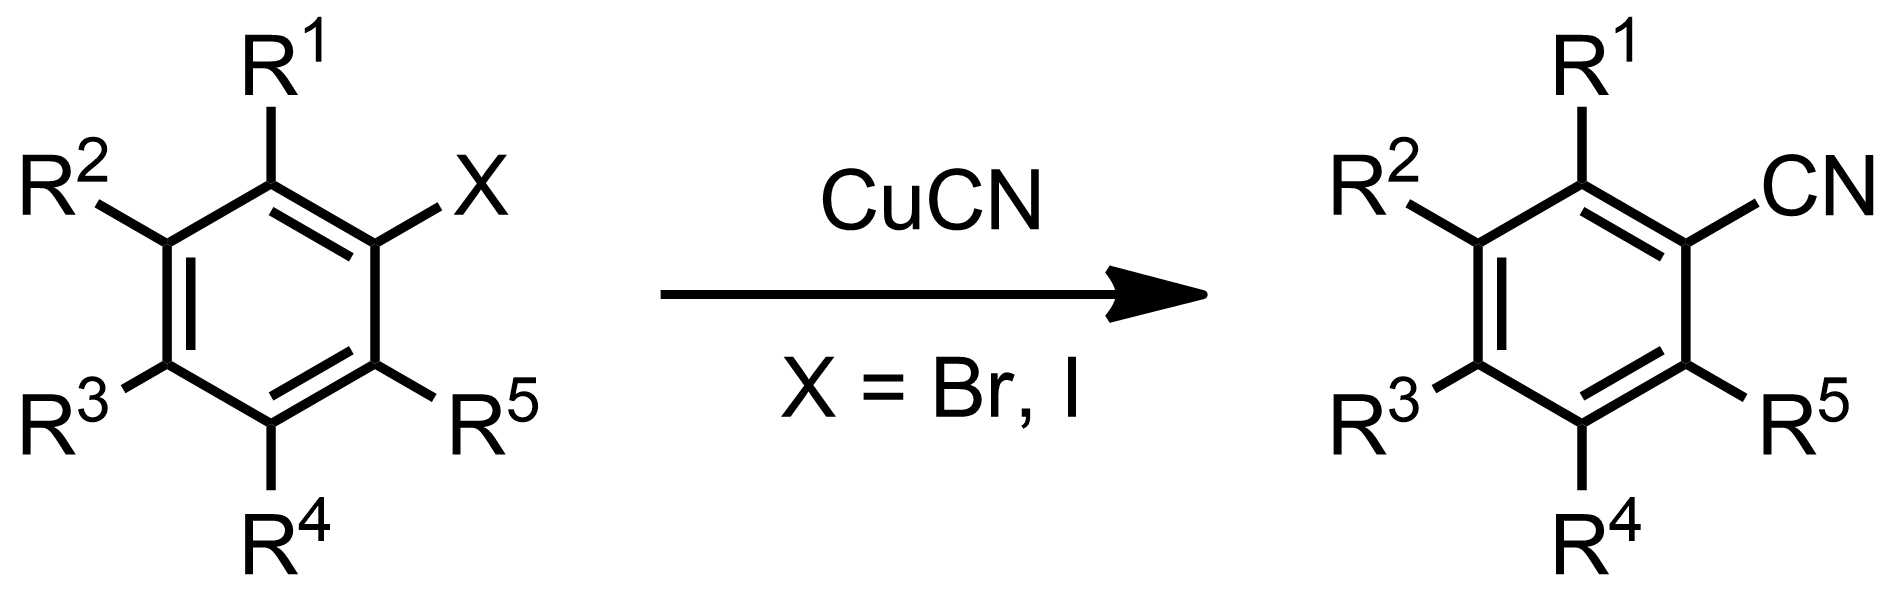 Schematic representation of the Rosenmund-von Braun Reaction.